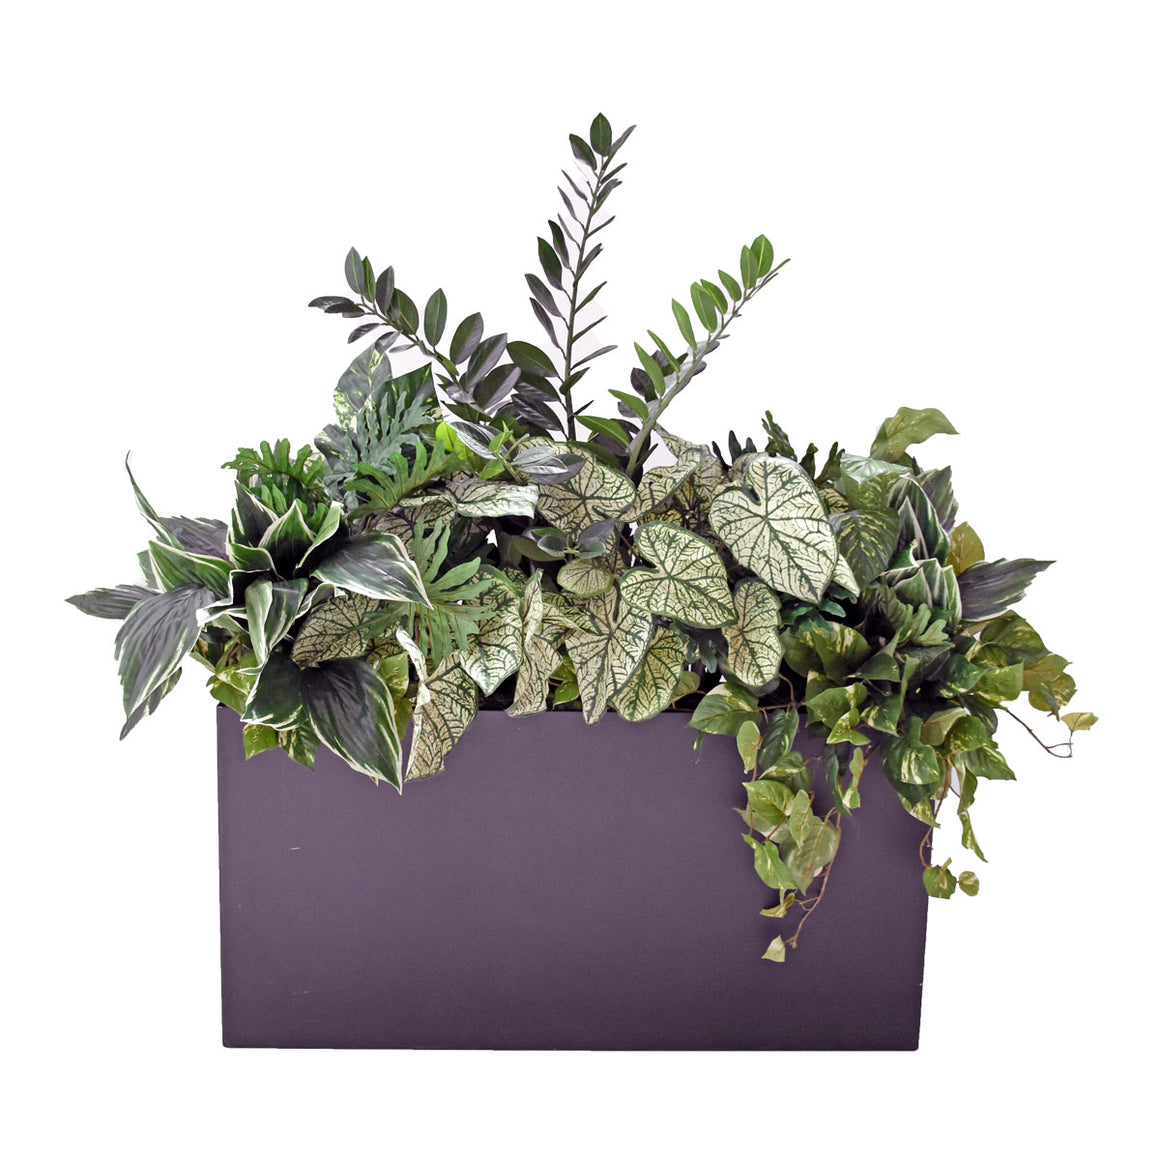 Pre-Made Large Arrangement - Tropical Greenery in Metal Trough